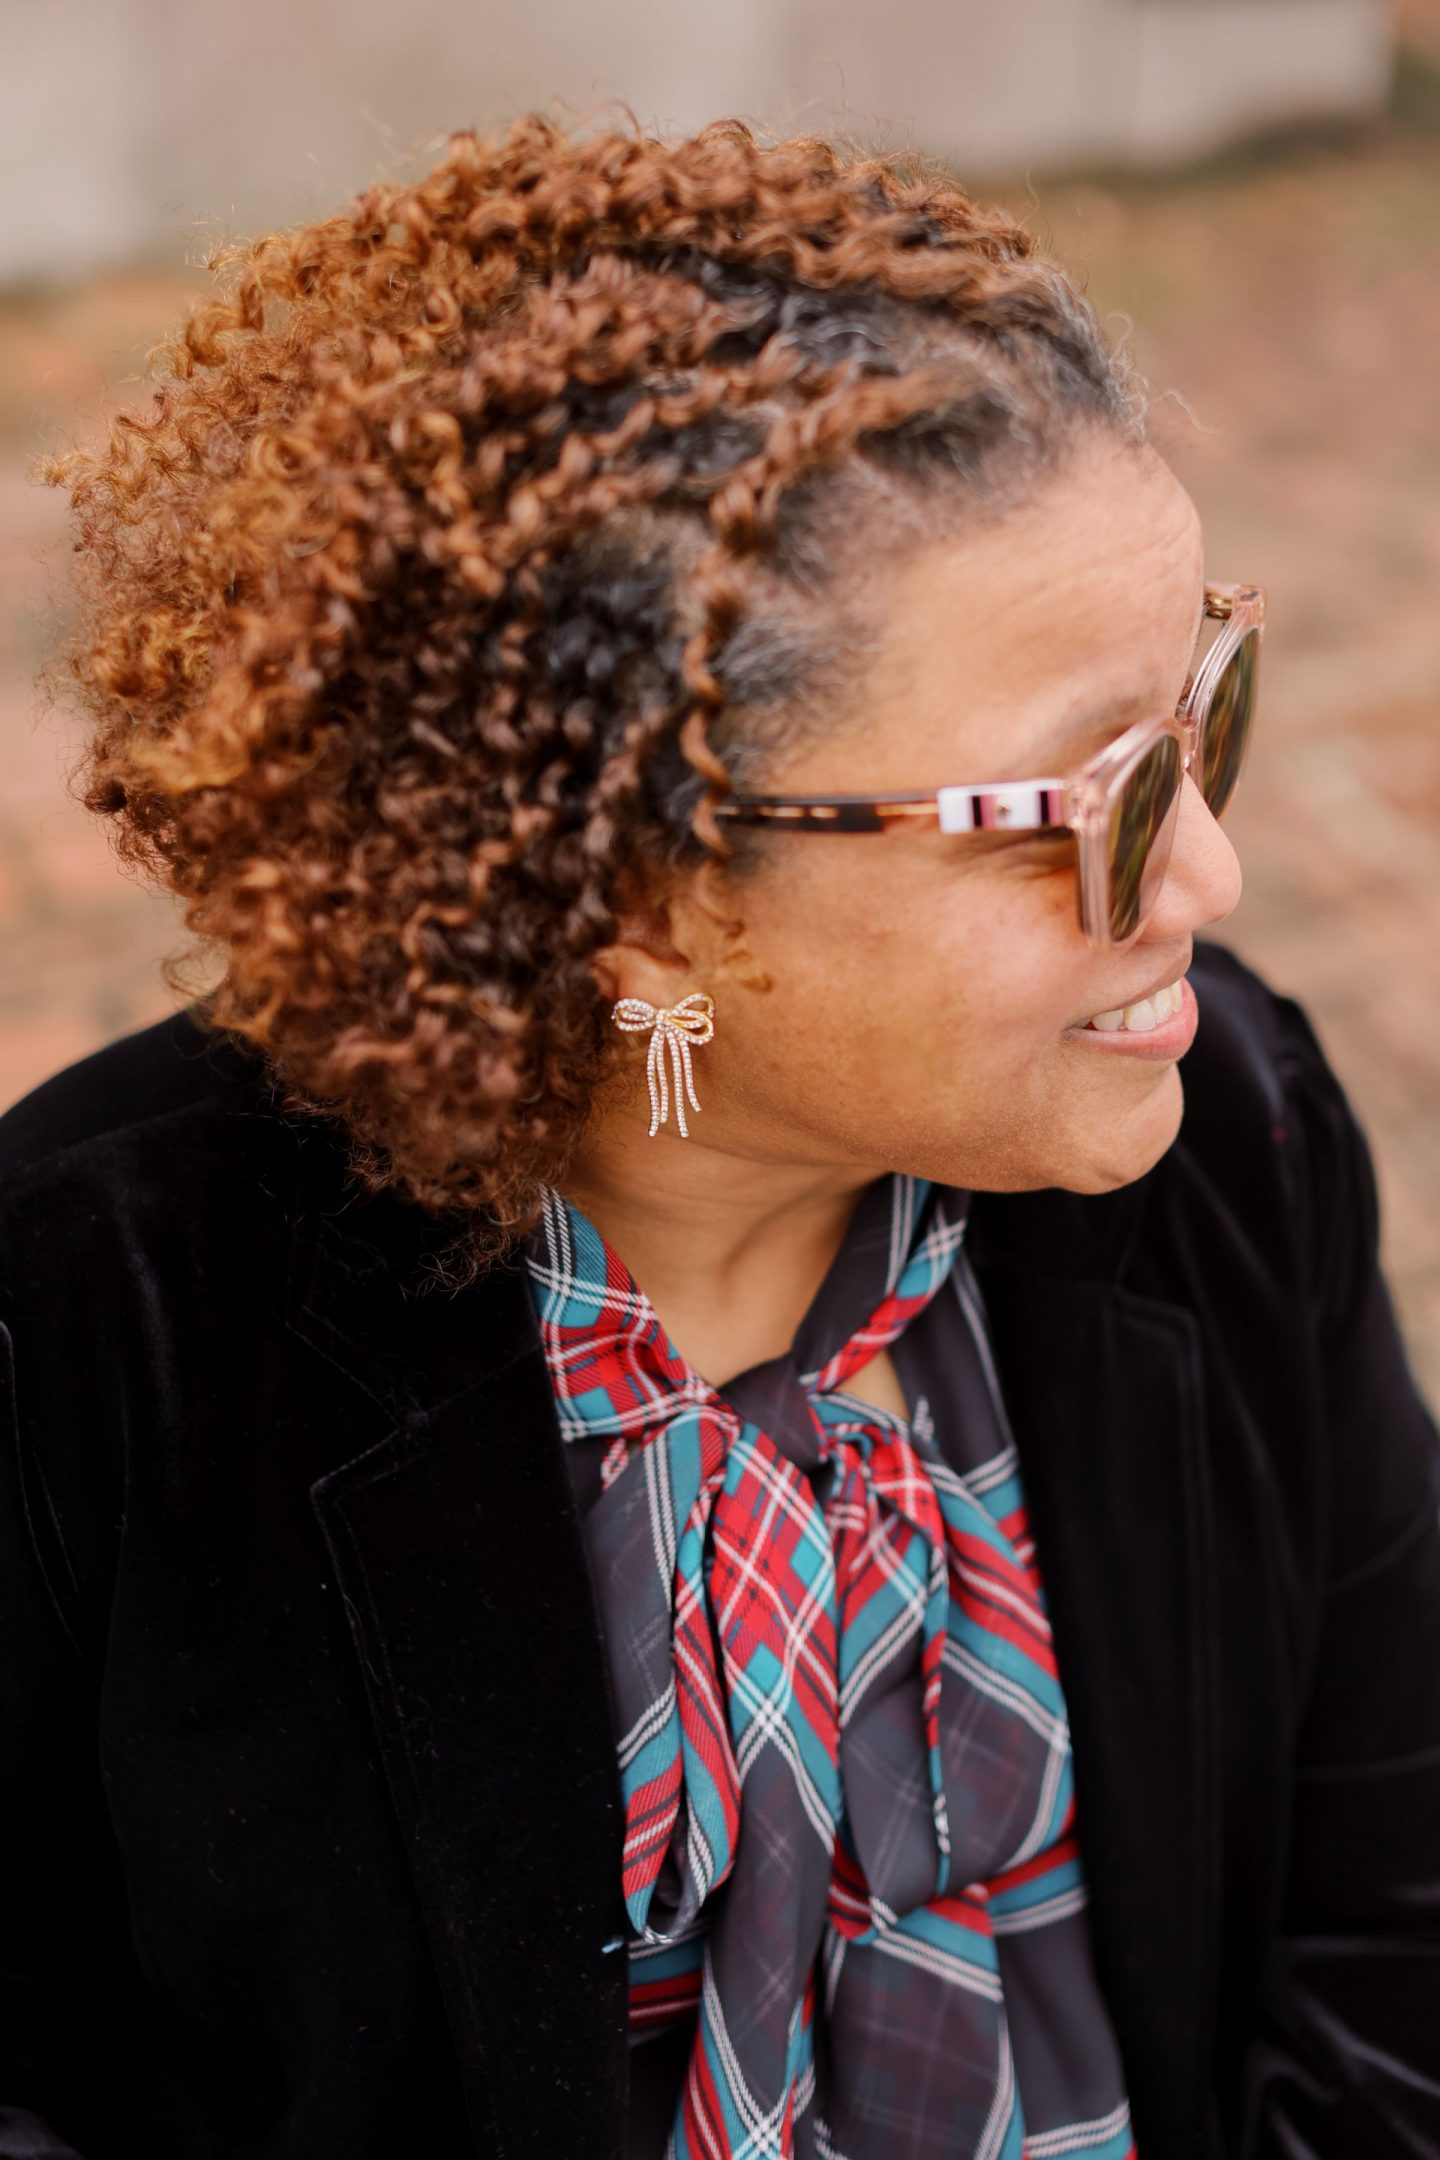 Holiday Outfits by popular Kentucky fashion blog, Really Rynetta: image of a woman standing outside and wearing a velvet suit and tartan plaid shirt.